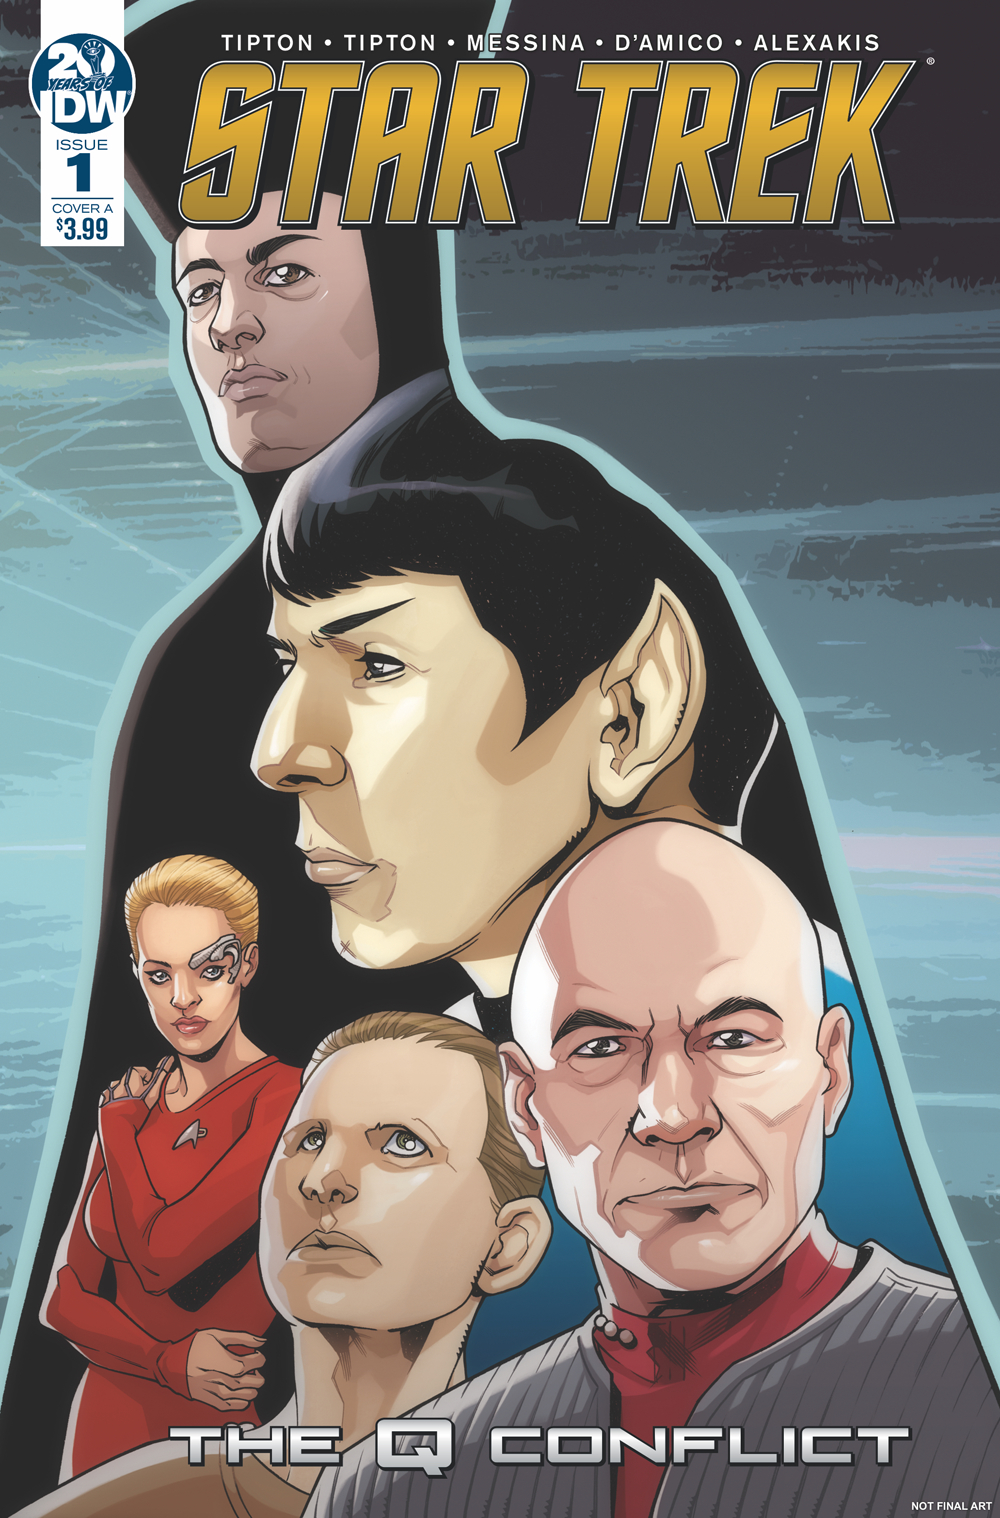 STAR TREK Q CONFLICT #1 (OF 6) CVR A MESSINA